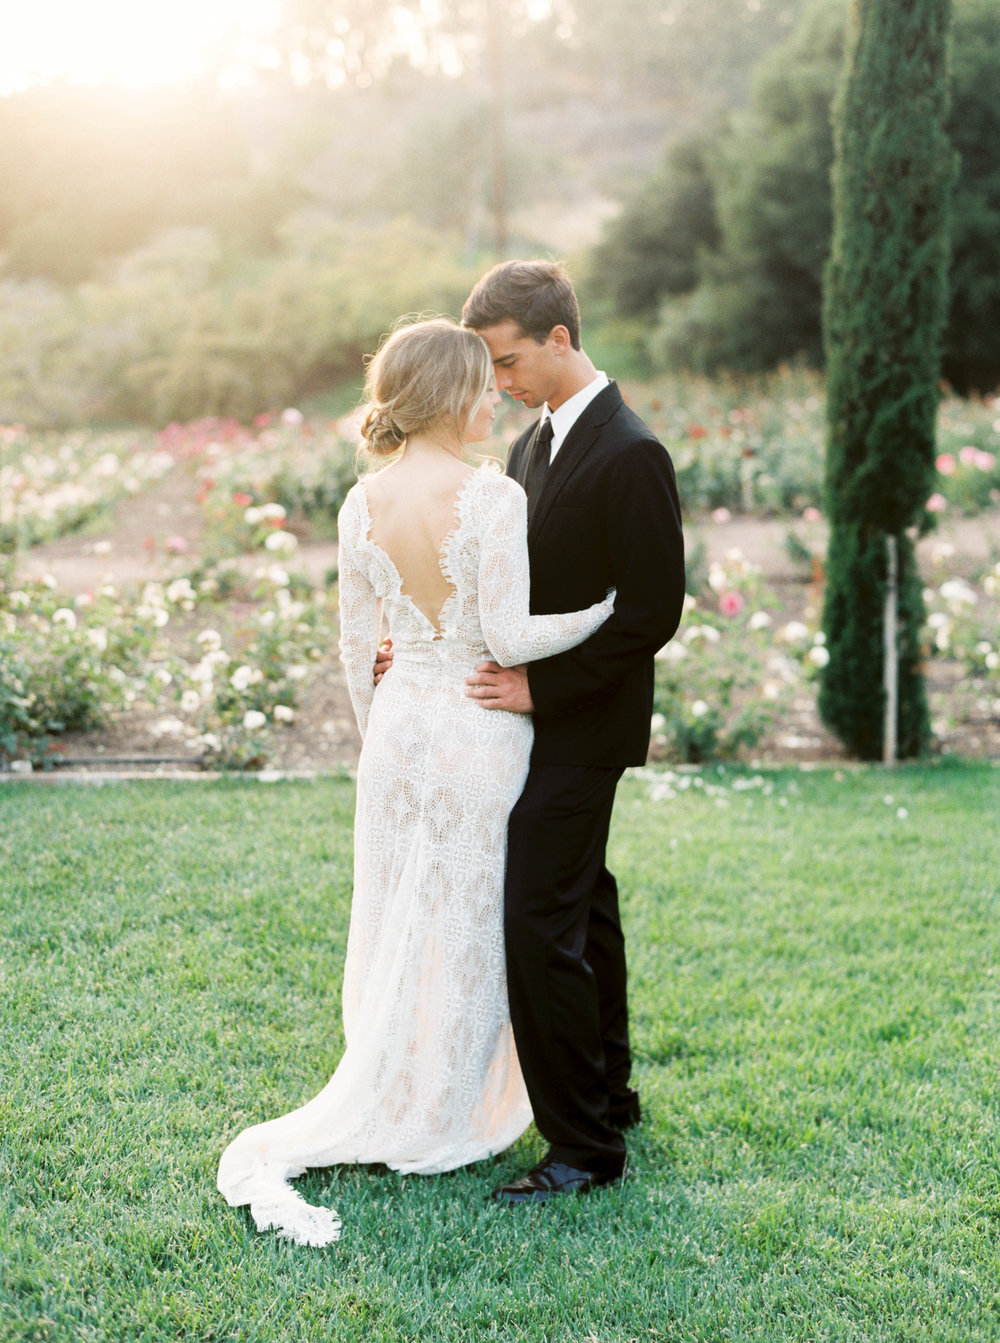 Meghan Mehan - California Wedding Photographer | Santa Barbara Wedding 027.jpg